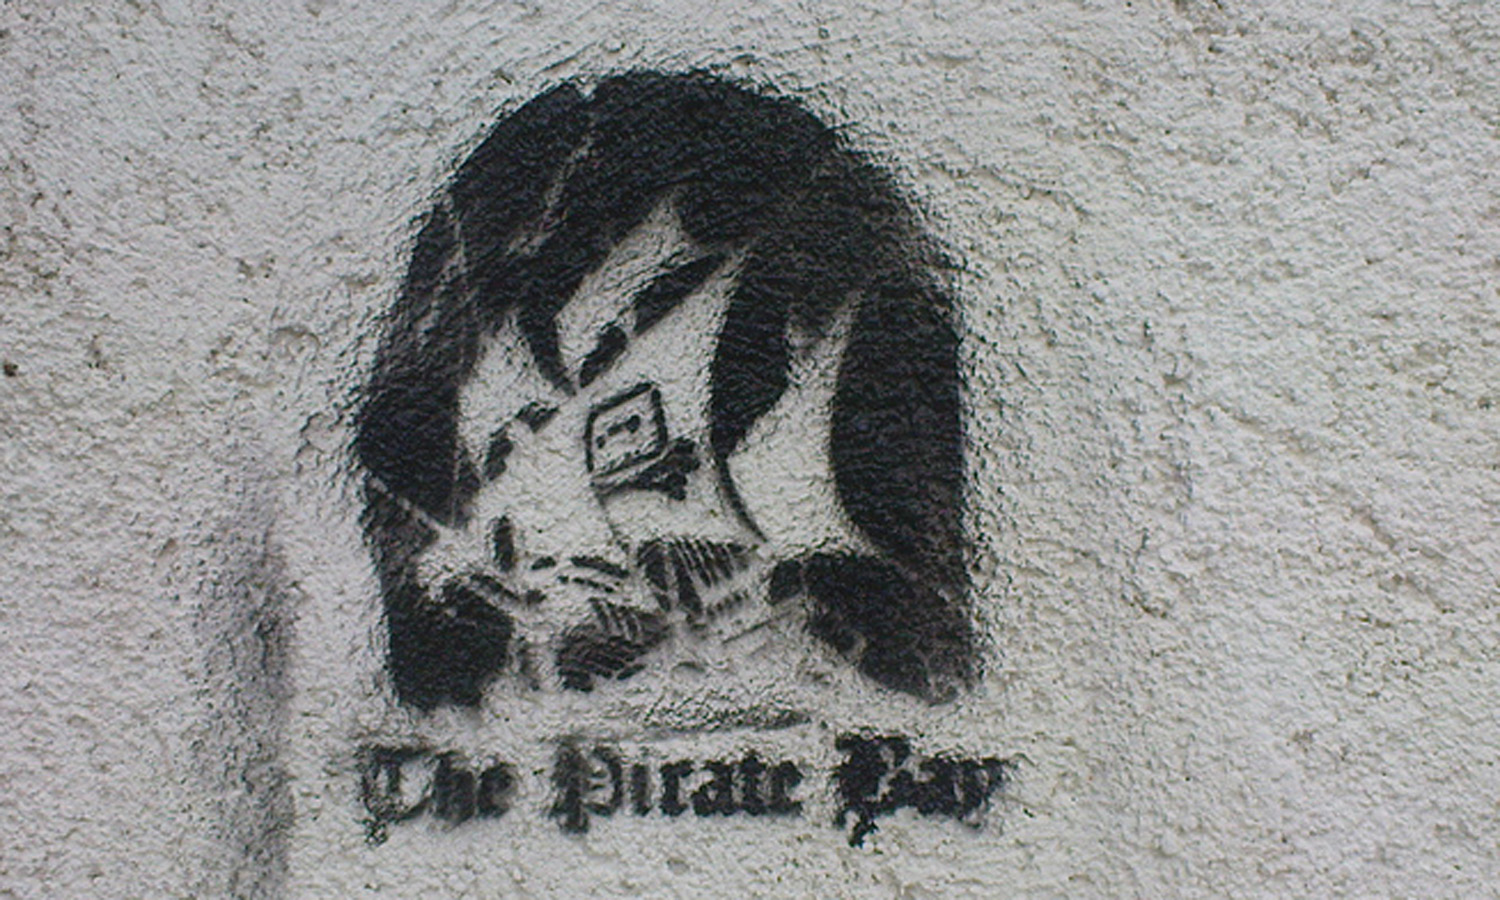 The Pirate Bay founders go 'missing' en route to Hack in the Box security conference